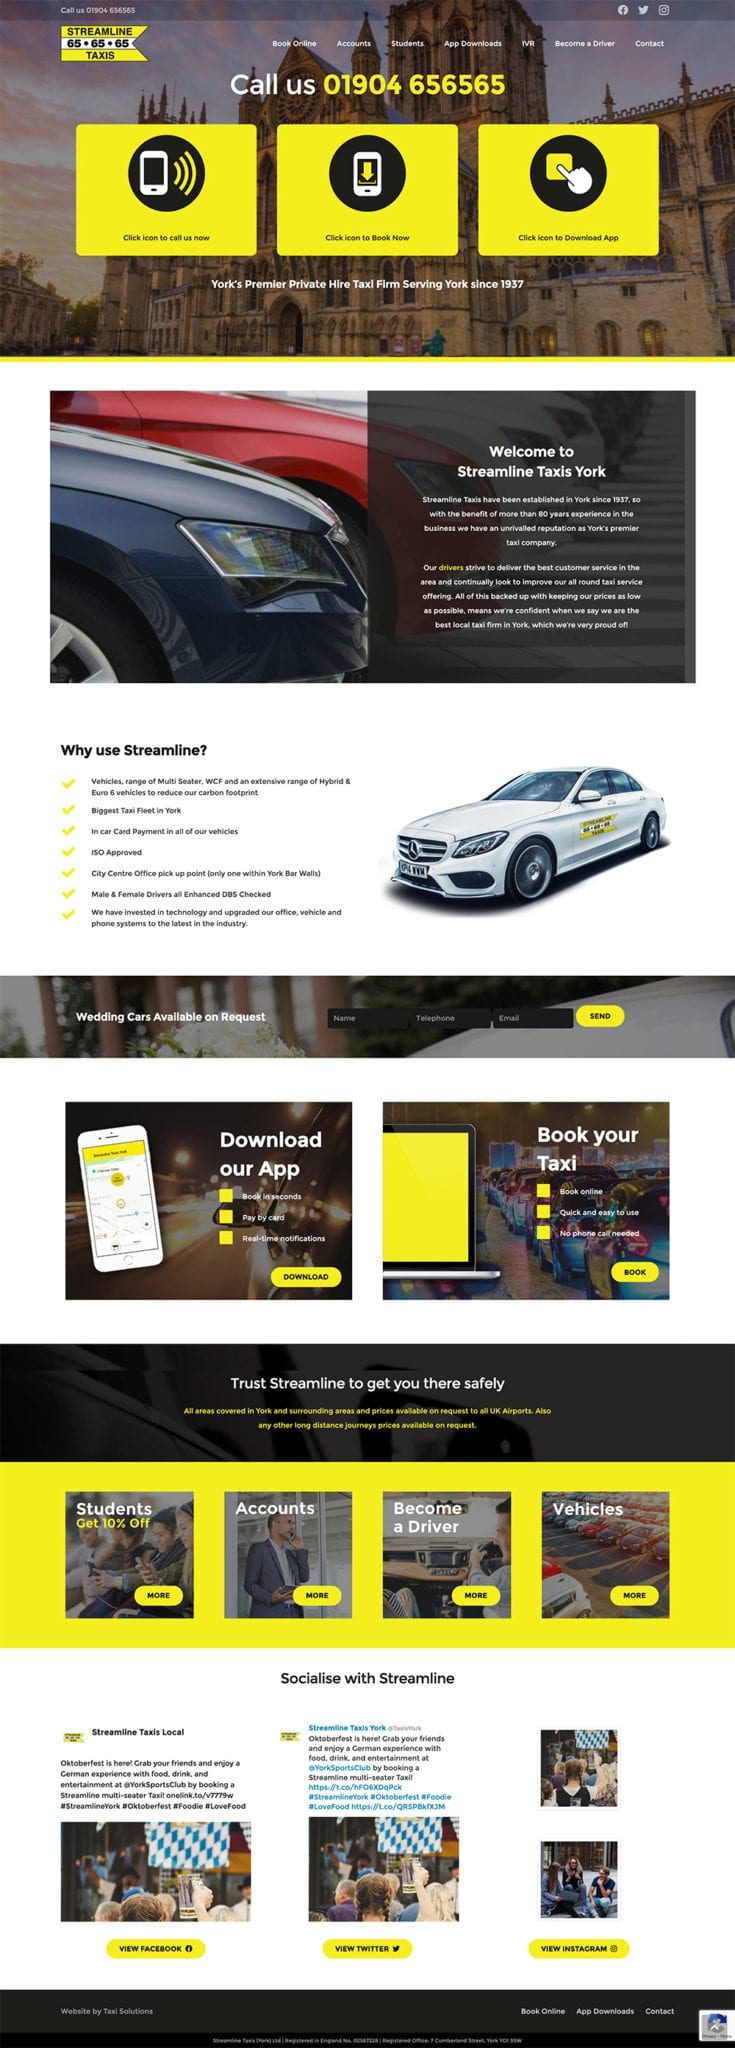 Streamline Taxis full homepage design